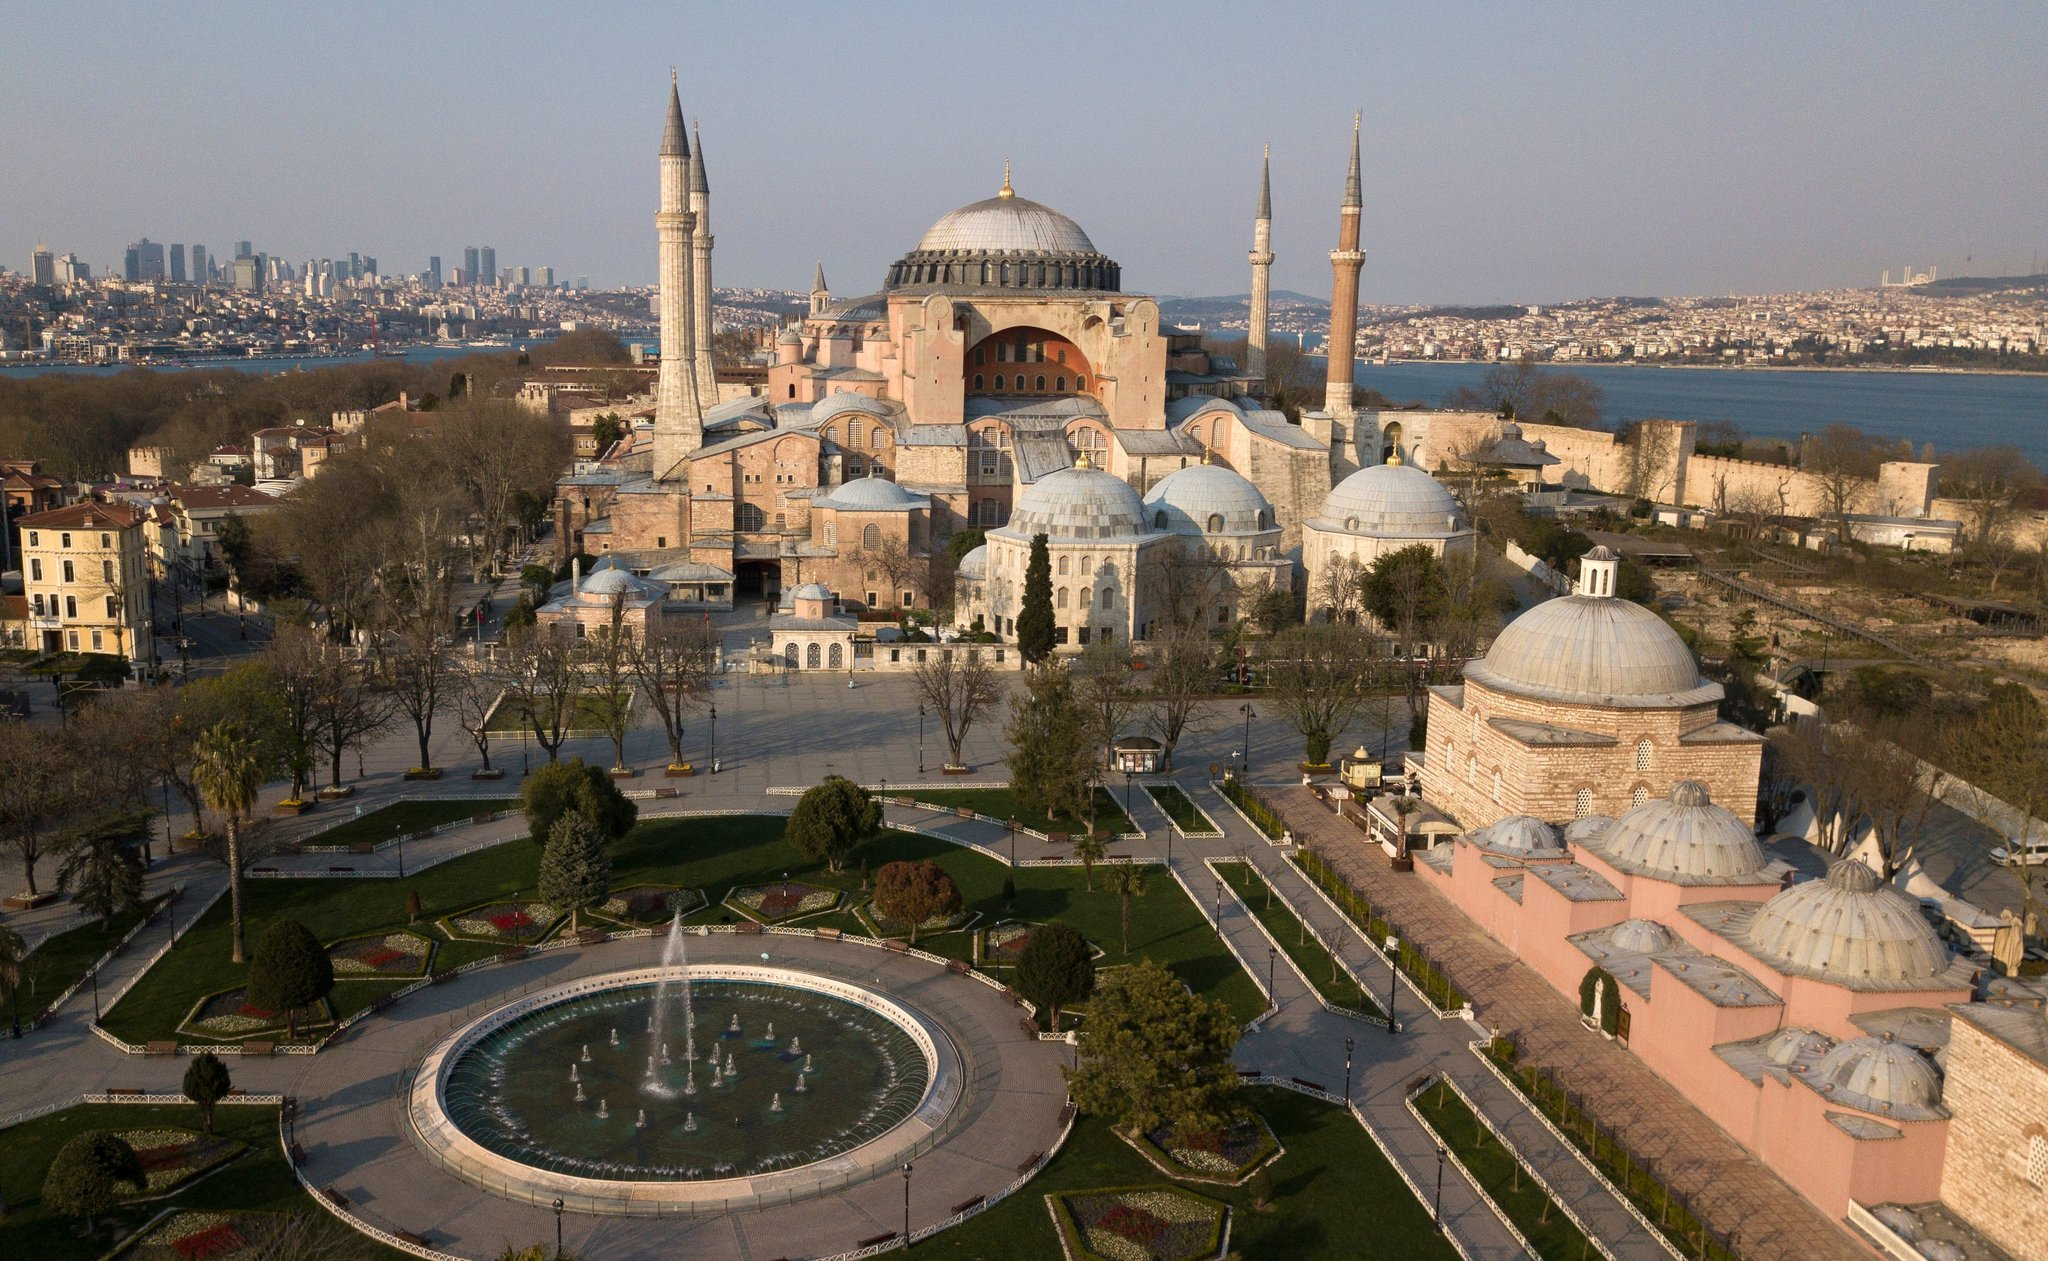 Hagia Sophia: Turkish court ruling